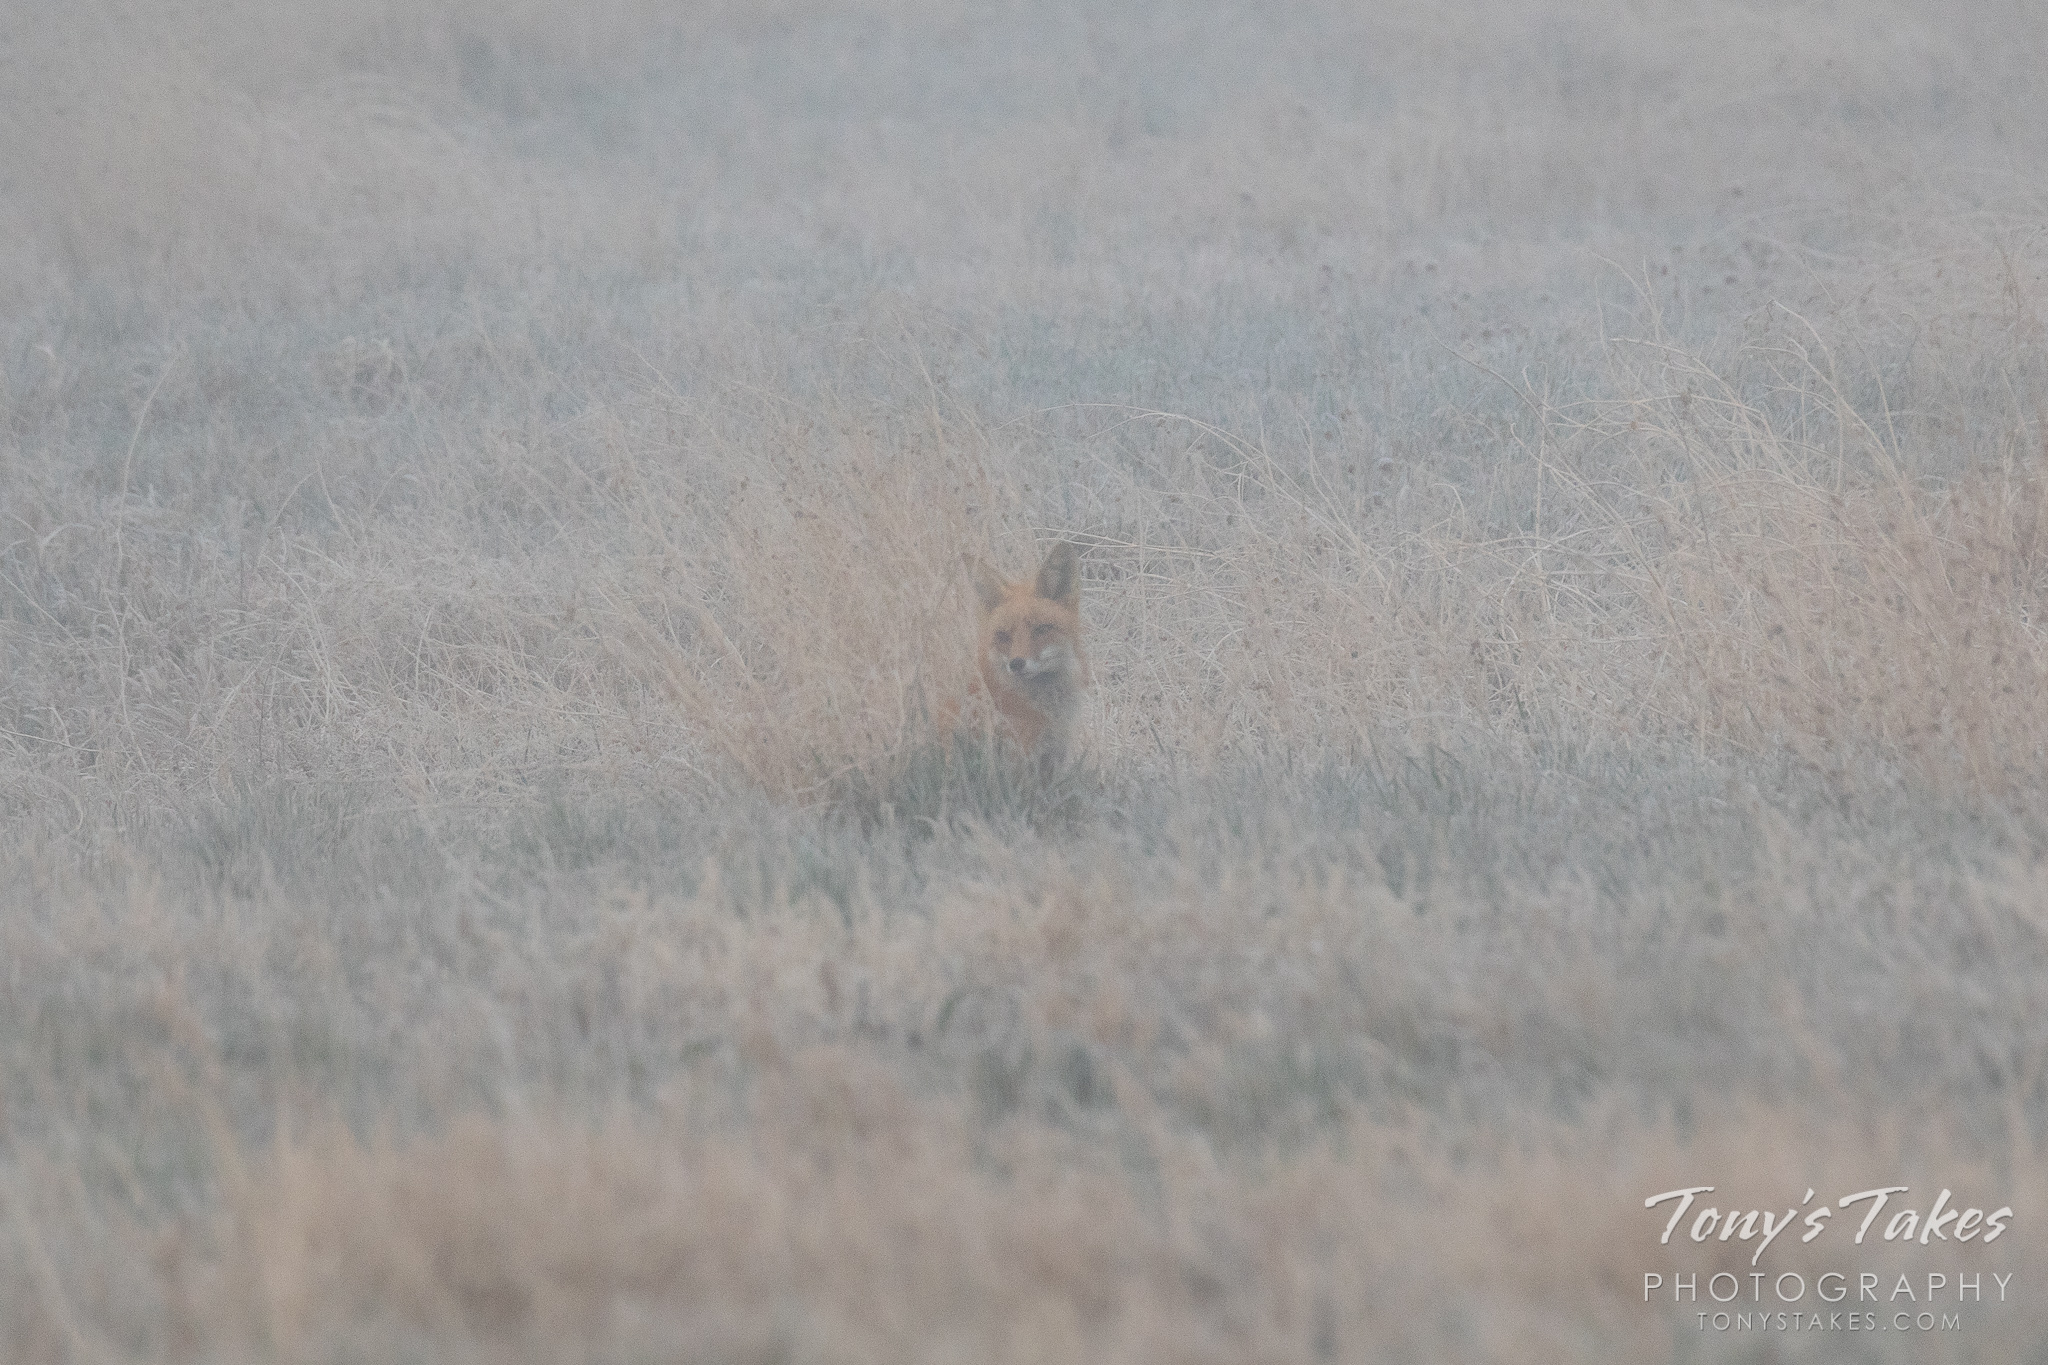 A red fox hanging out on a foggy morning on the Colorado plains. (© Tony's Takes)